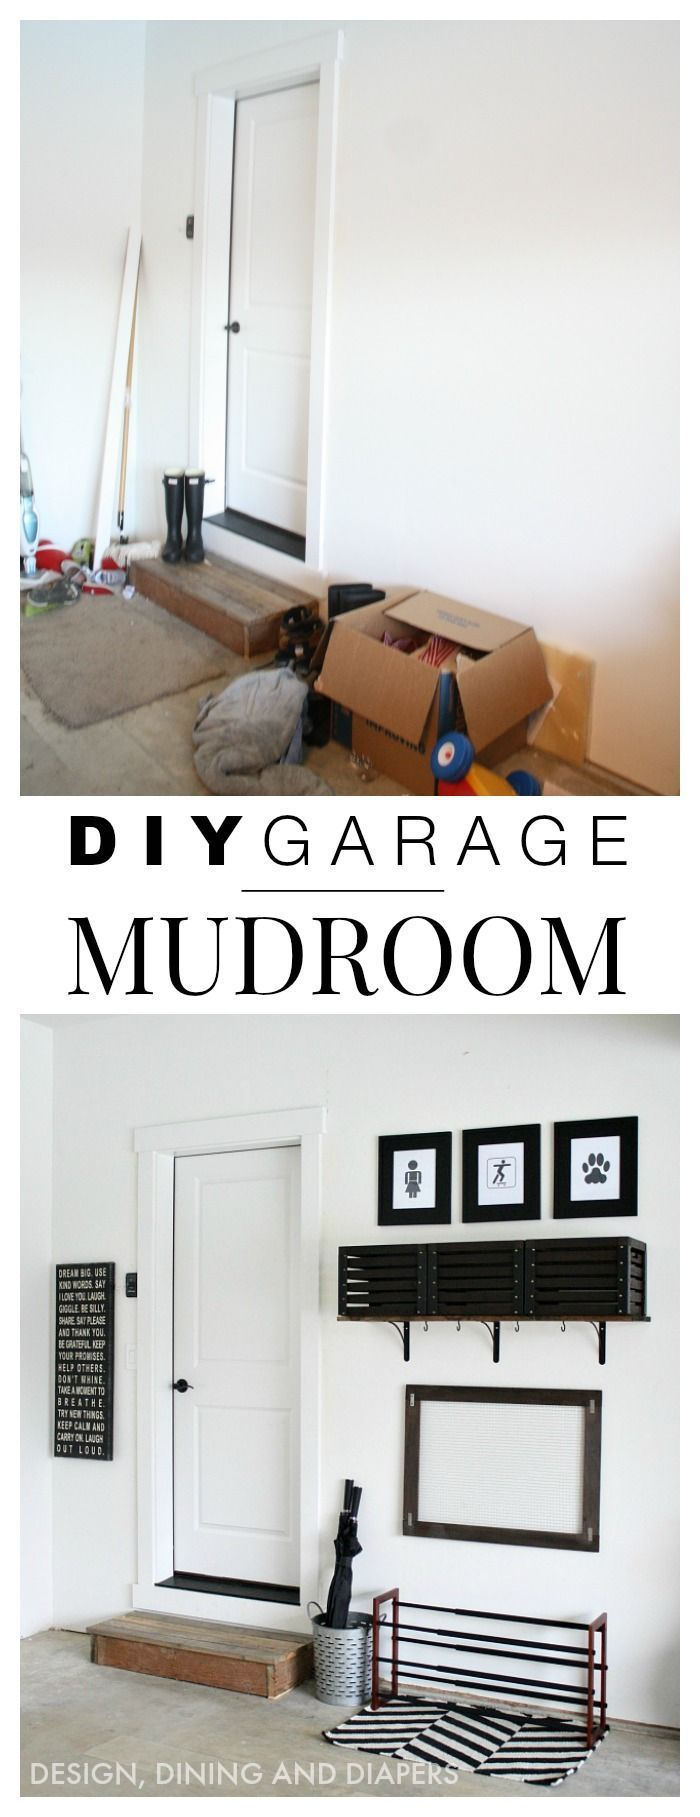 Diy simple garage mudroom pinterest mudroom walmart and products